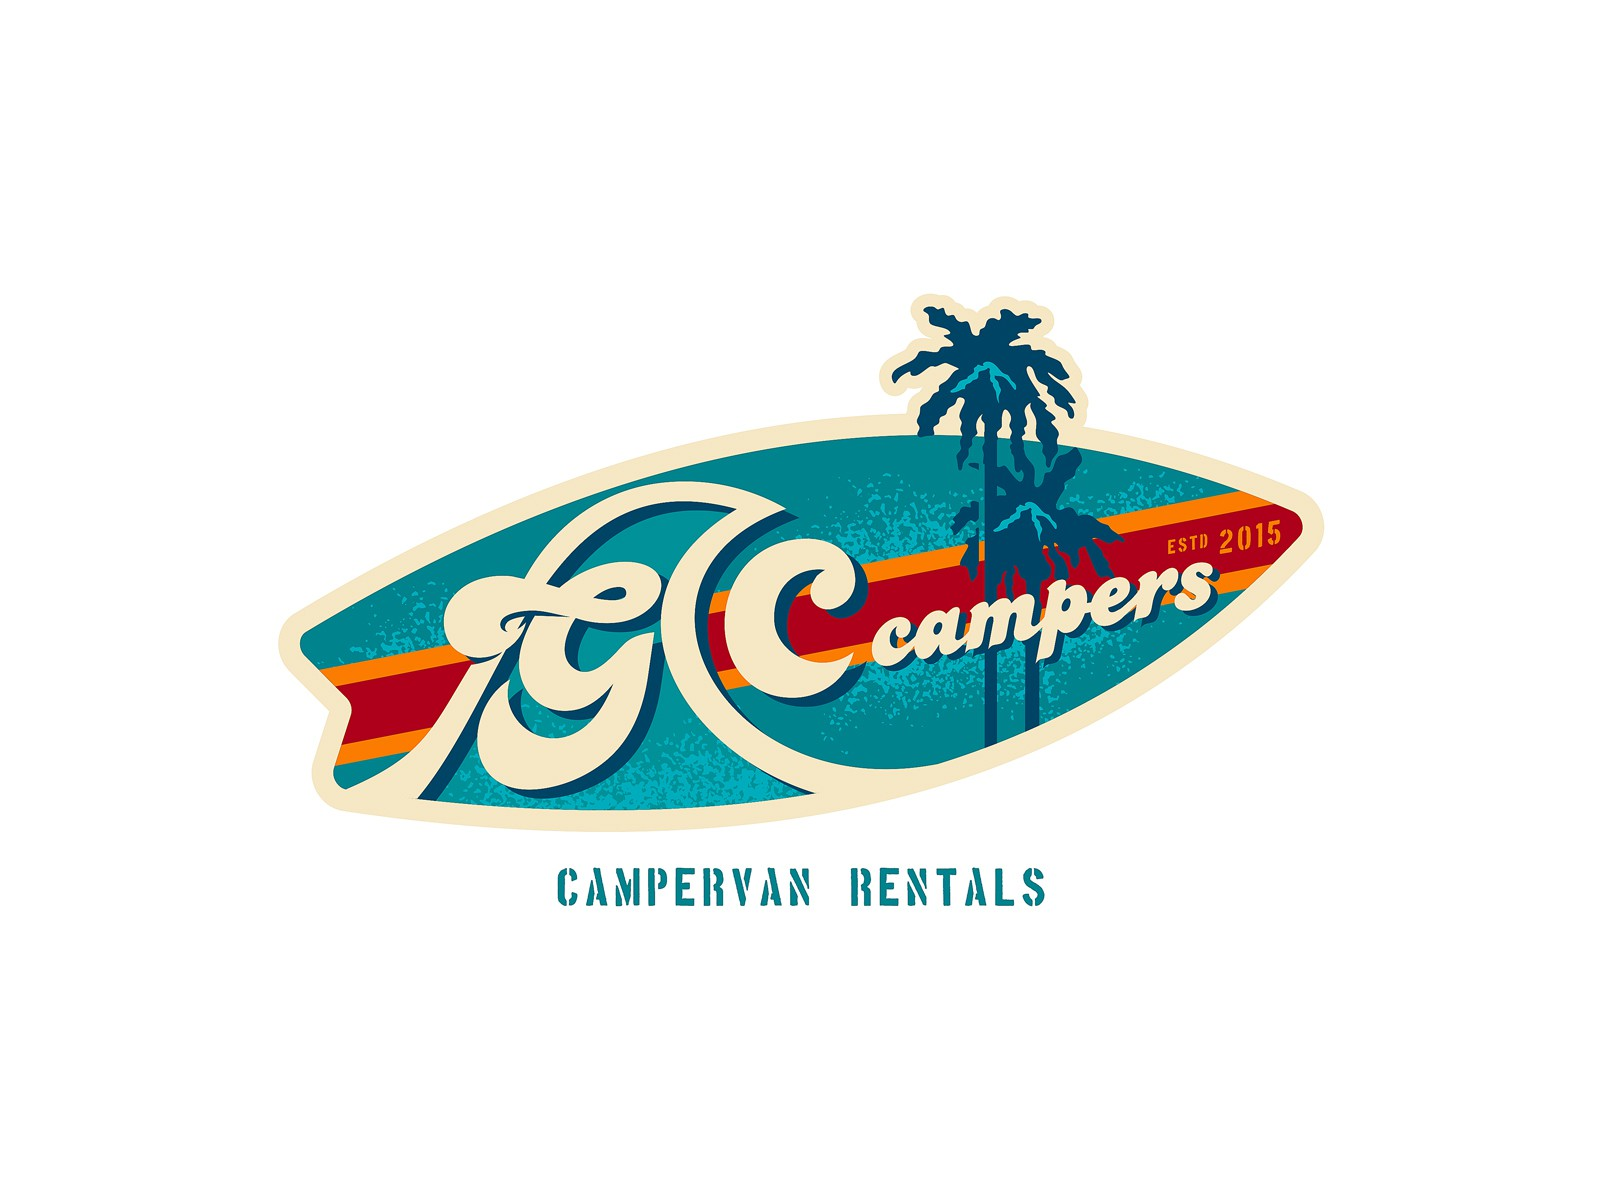 Create a capturing Vintage Surfer Campervan Hire Rental Company